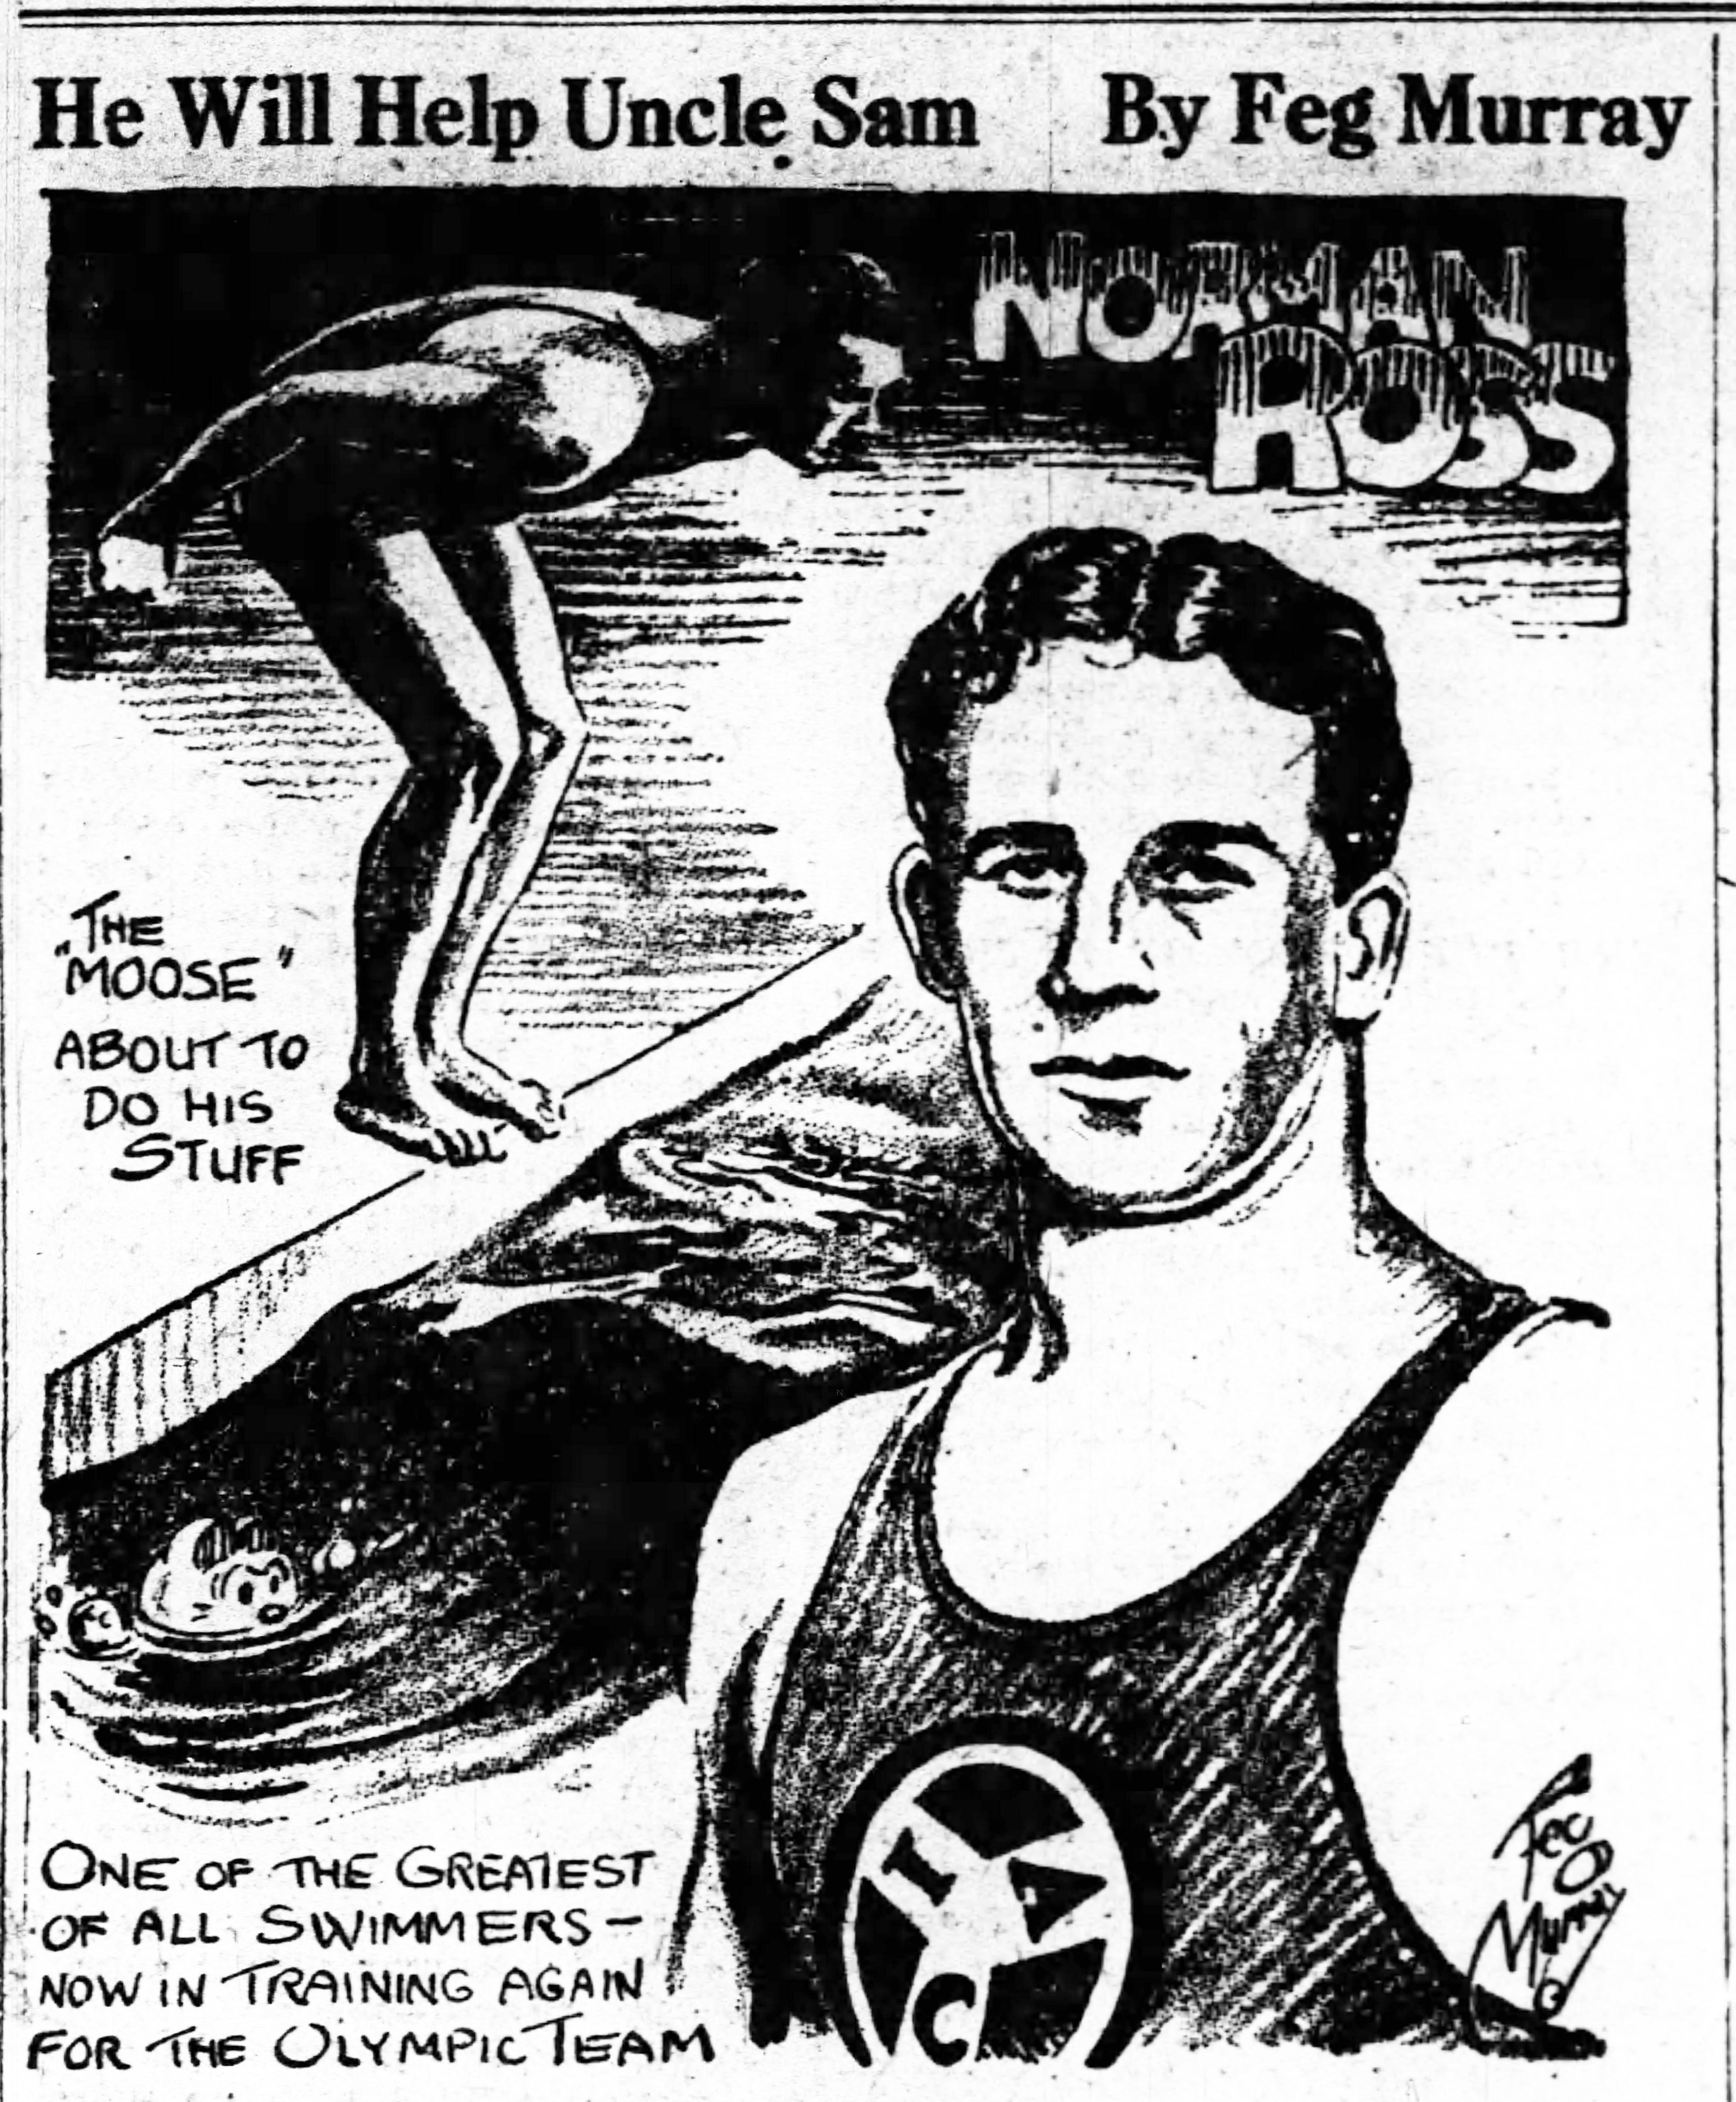 the swimming stars of the 1920 olympic games swimming world news 1920s Factory Girls norman ross feg murray small